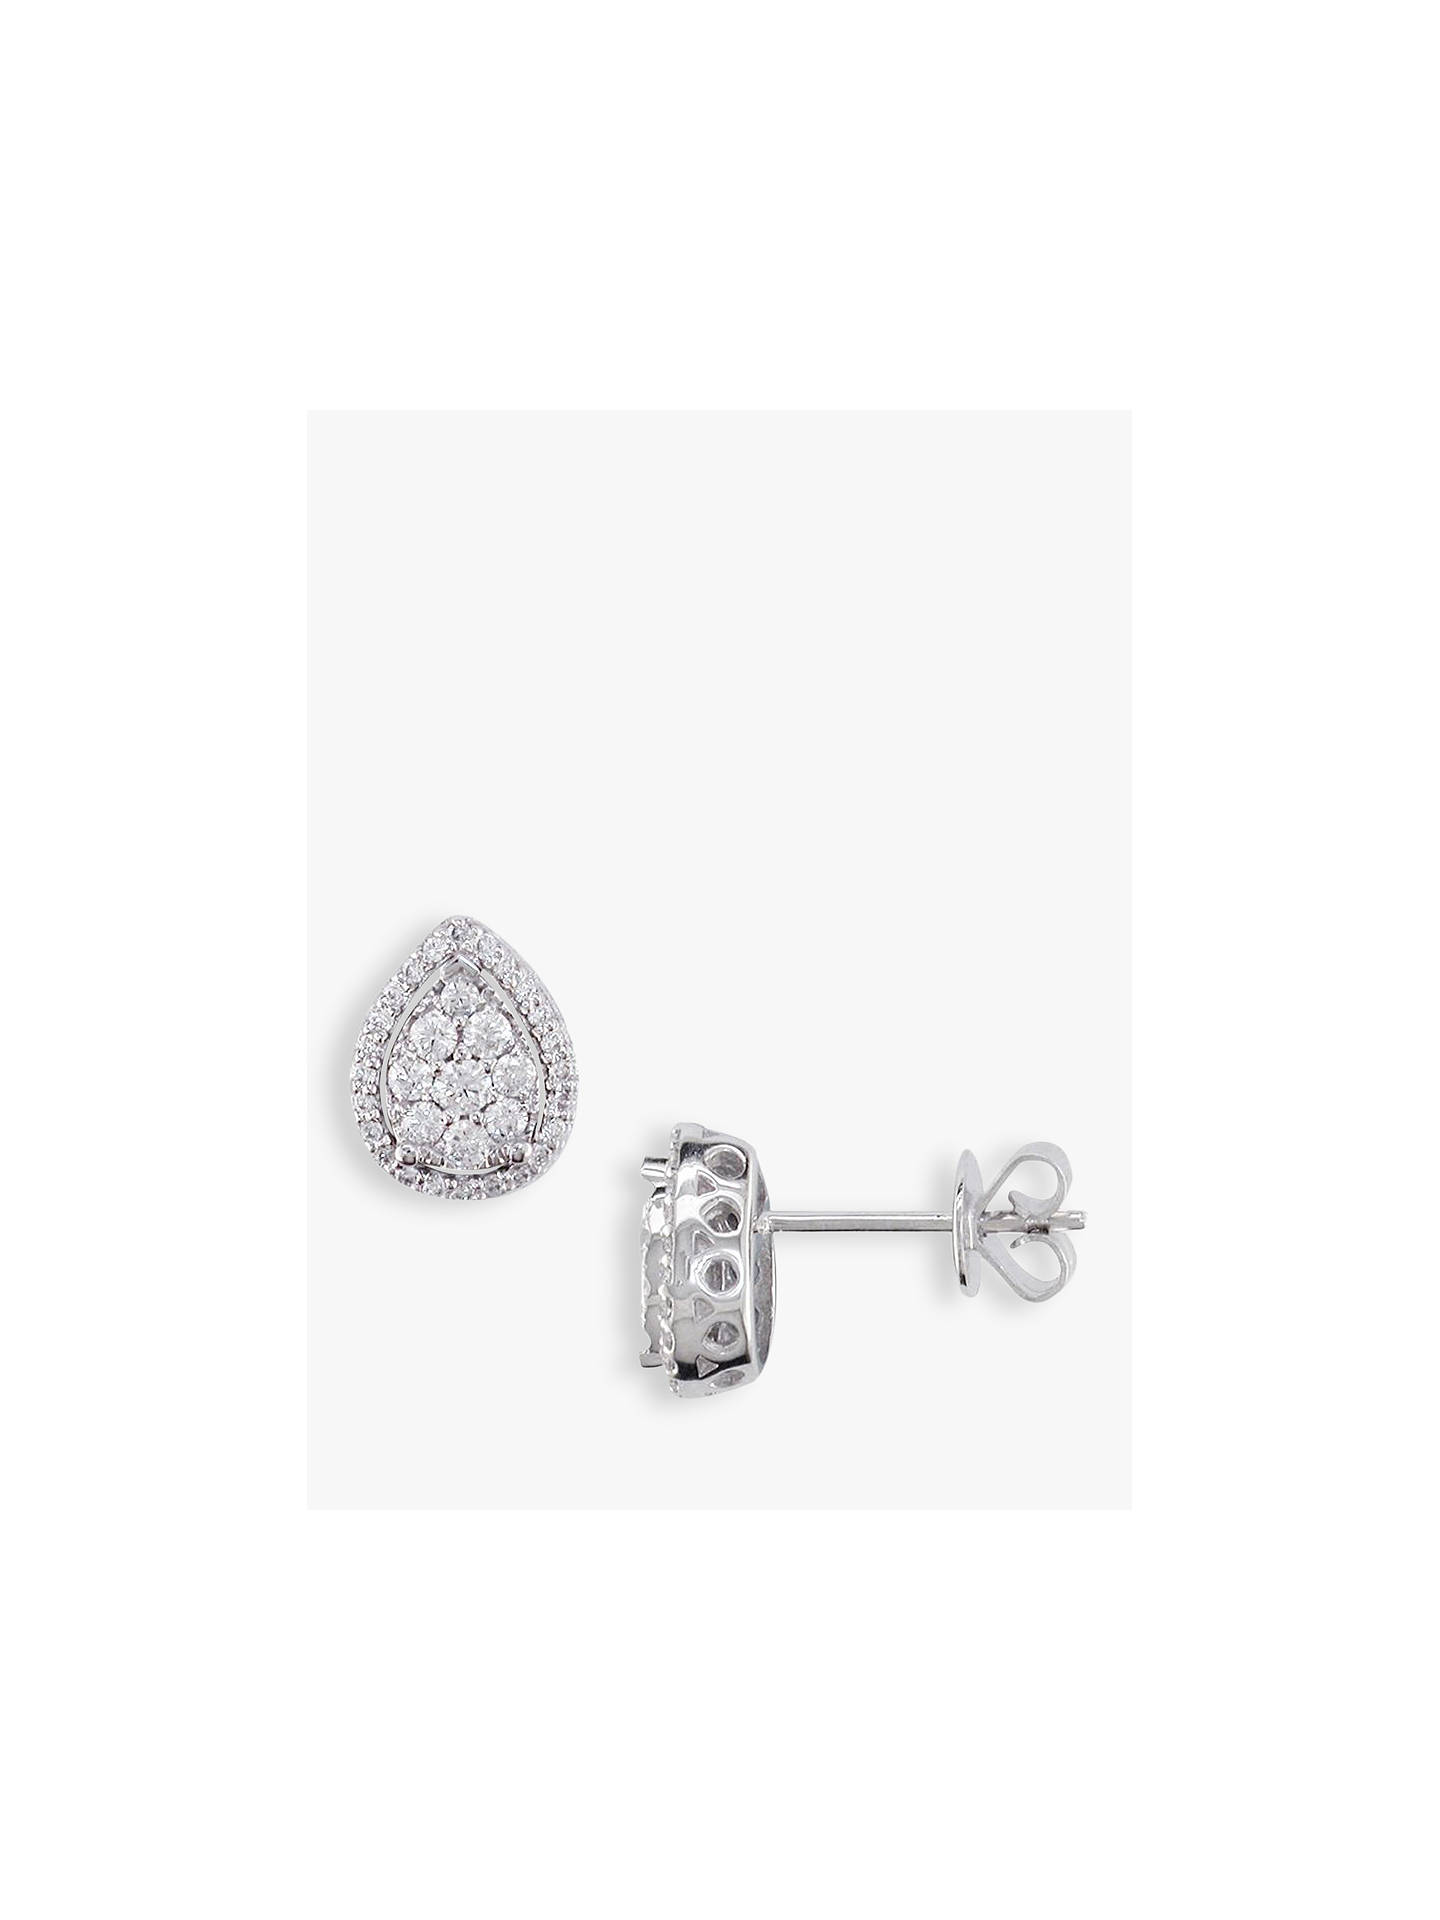 2b2d9ca67 Buy E.W Adams 18ct White Gold Pear-Shaped Diamond Cluster Stud Earrings,  White Gold